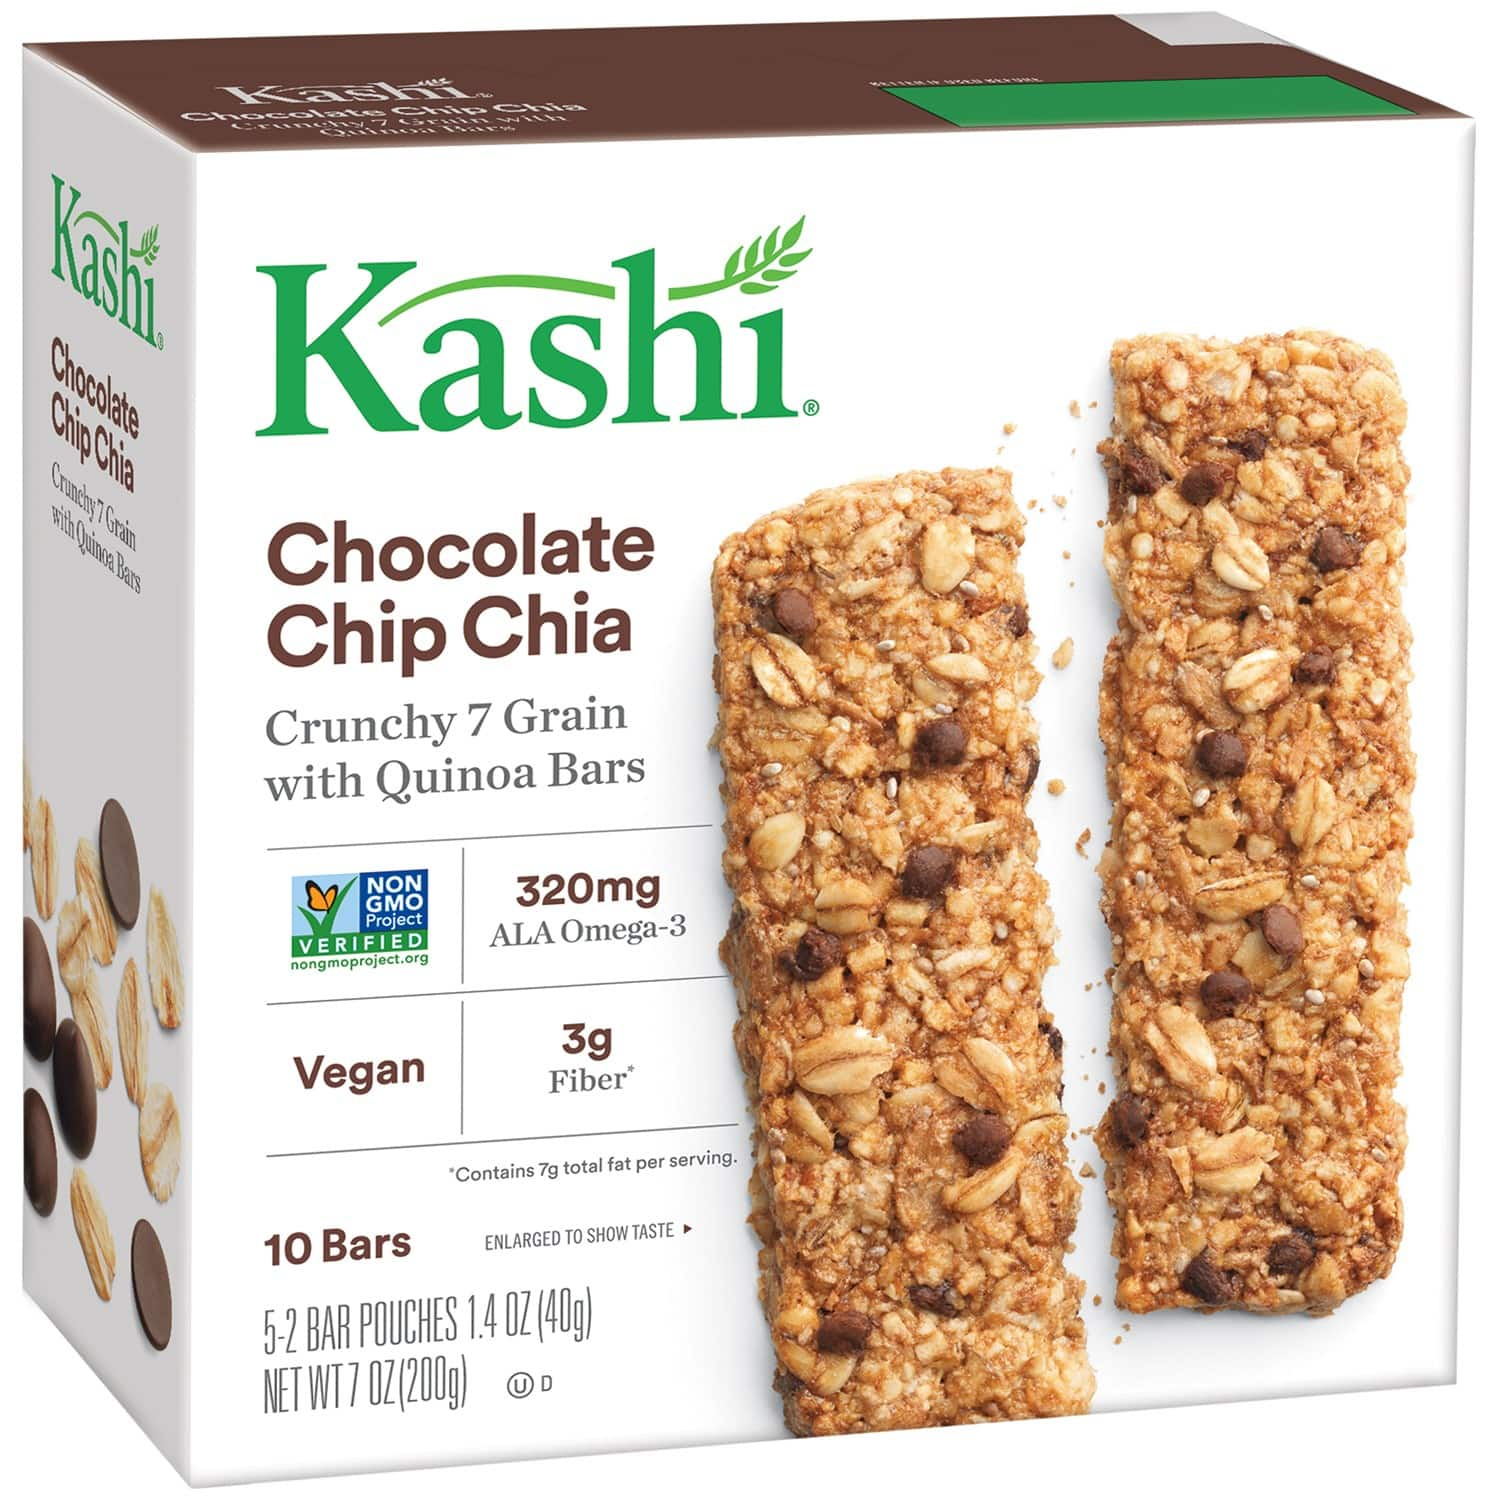 10-Count Kashi Crunchy Chocolate Chip Chia Granola Bars $1.75 w/ S&S